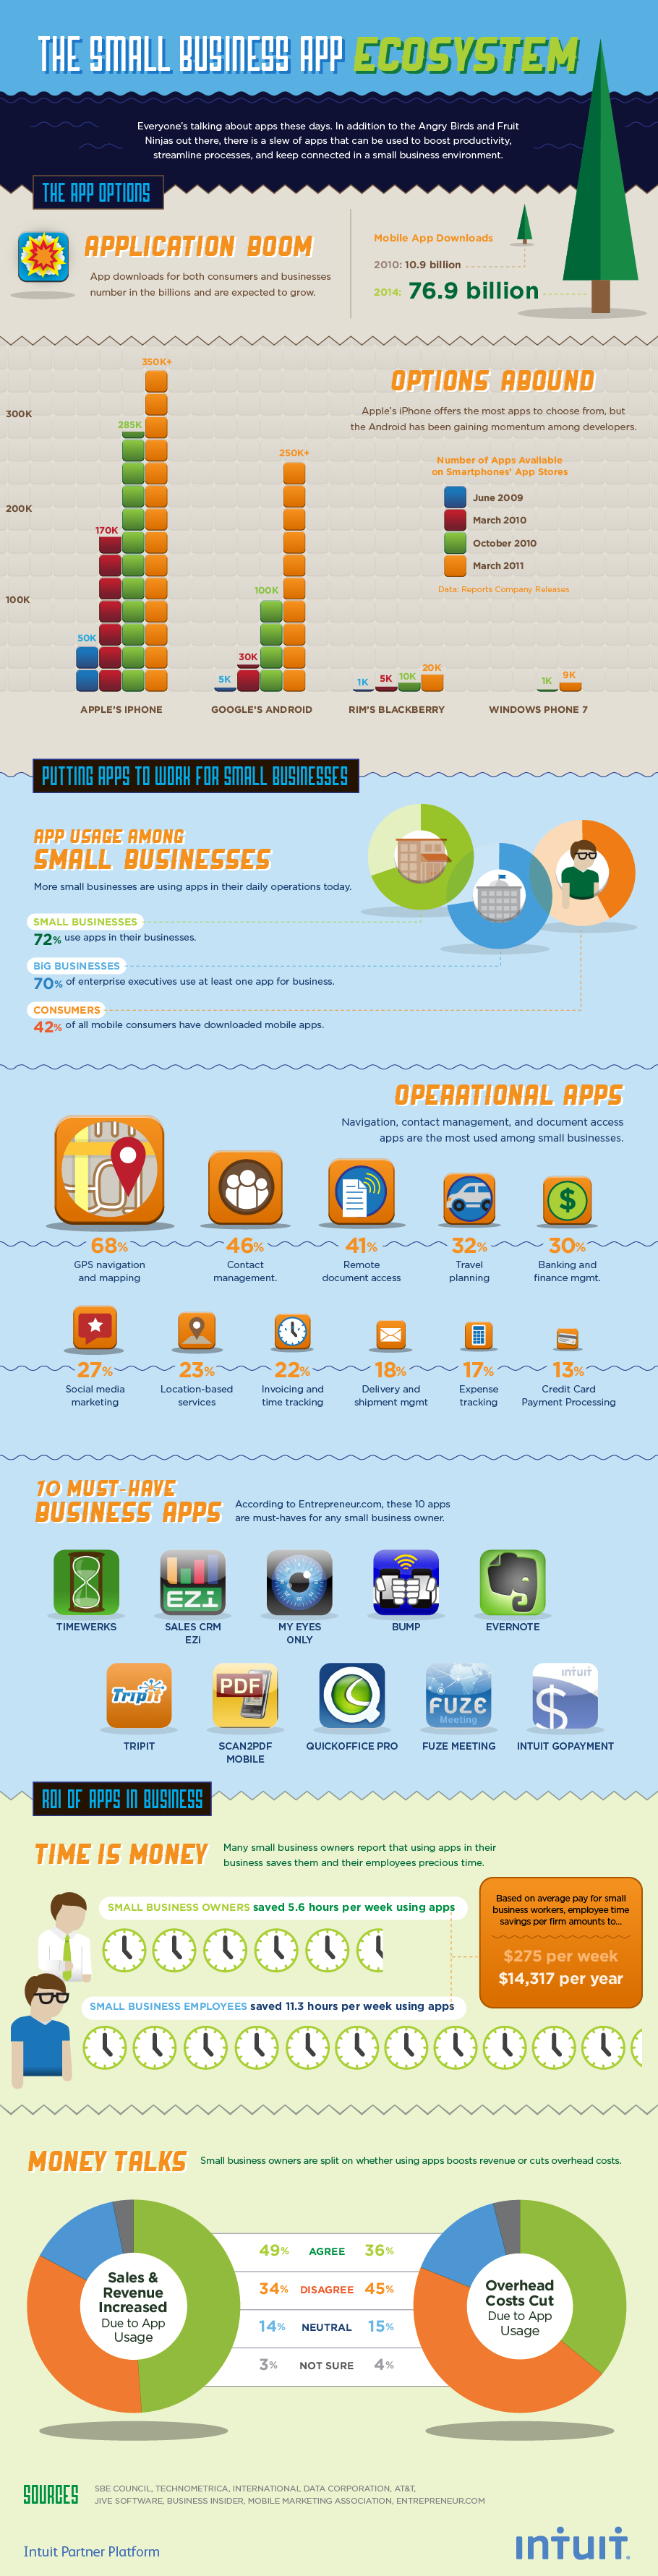 Page Not Found Startup Infographic Small Business Apps Small Business Marketing Strategy